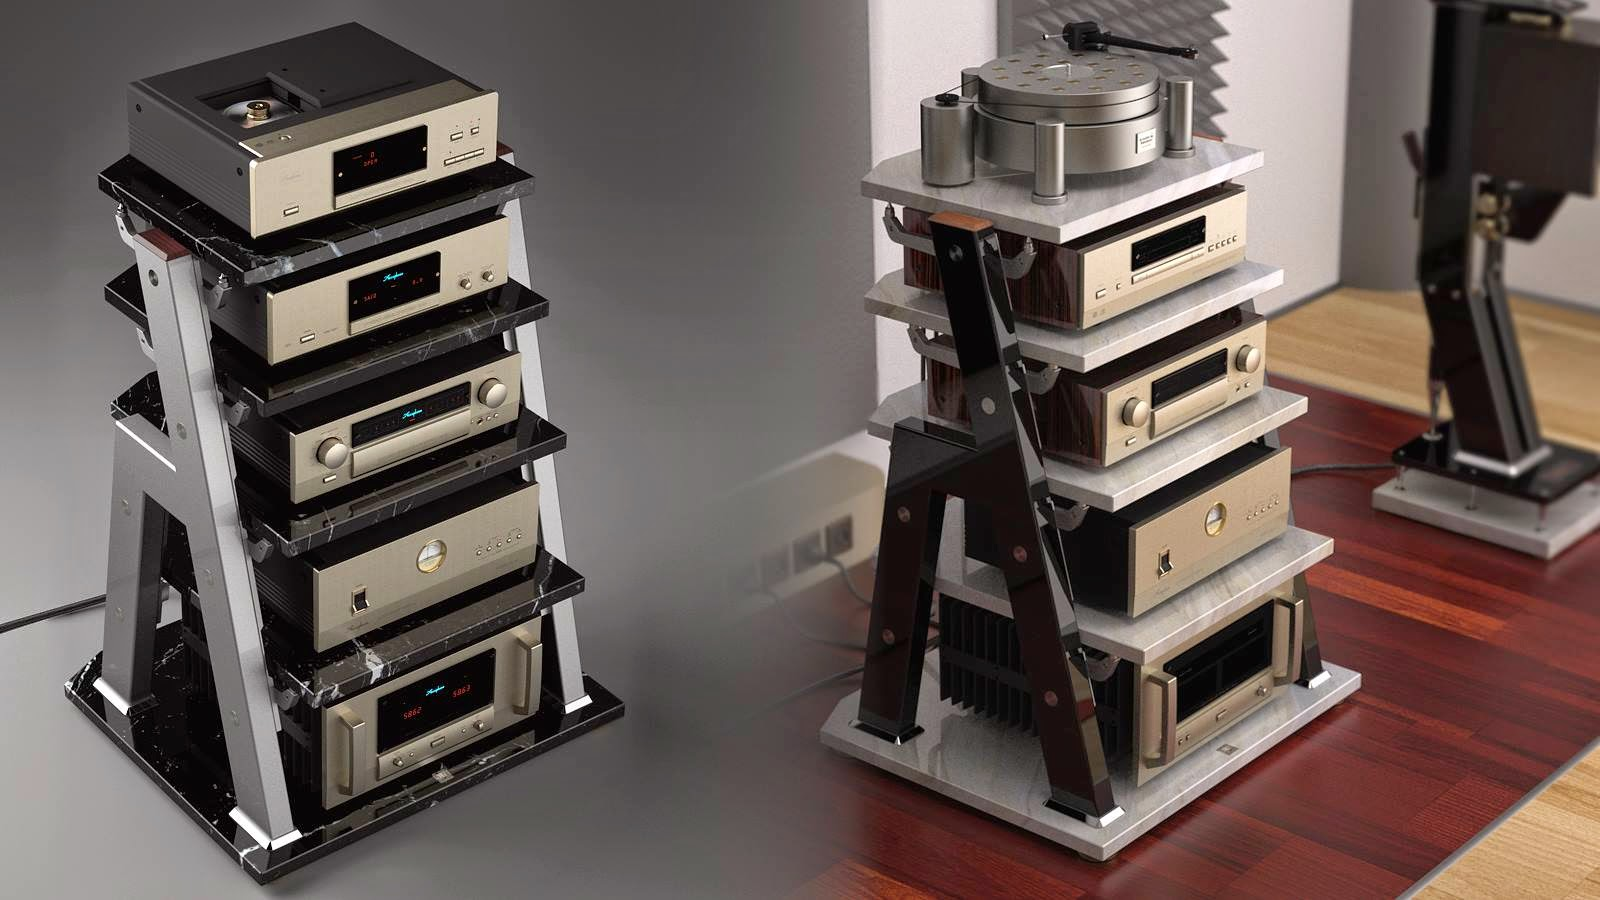 isolation hi decoration audio ideas and furniture racks stylist custom wonderful rack stereo end